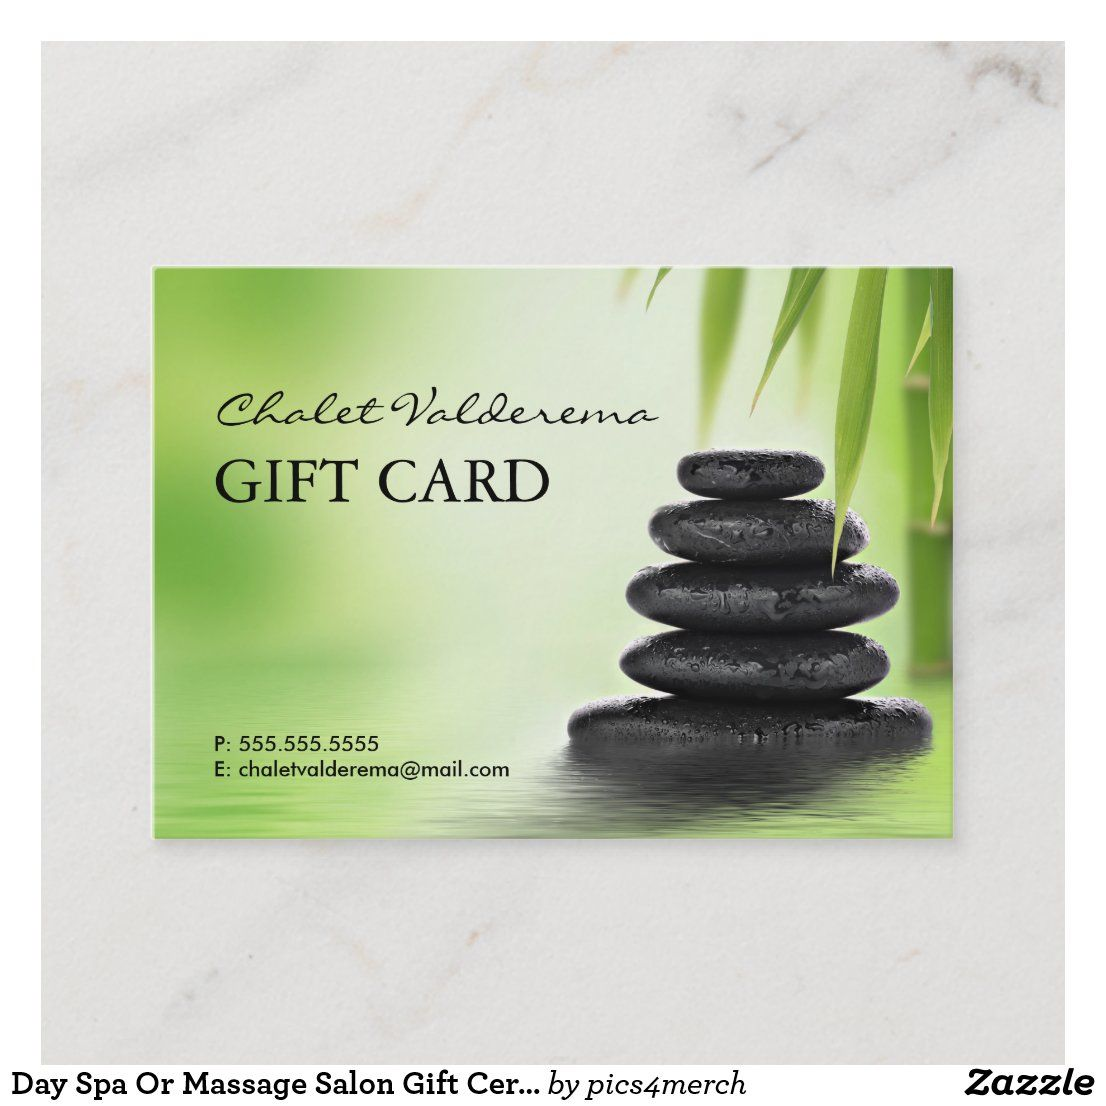 Day spa or massage salon gift certificate template